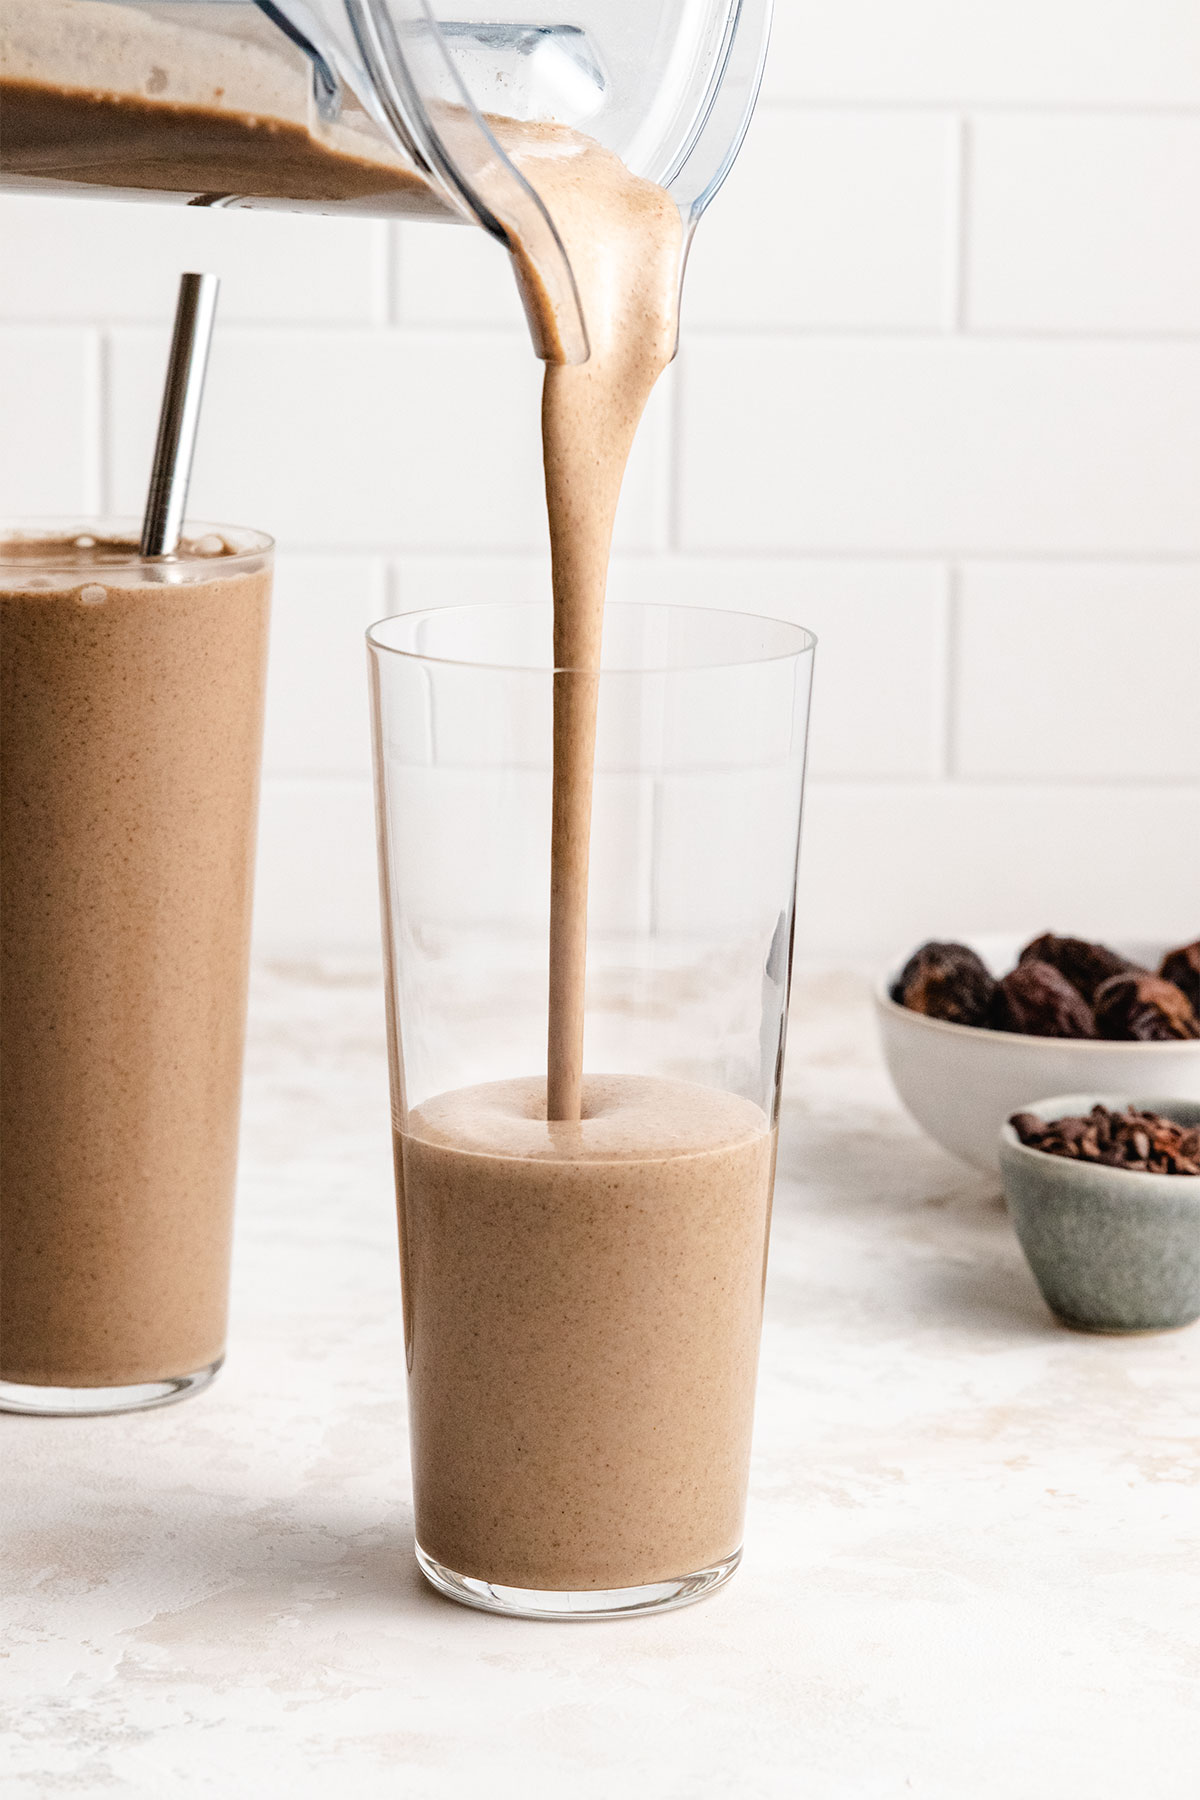 Coffee Protein Smoothie being poured from a blender into a tall clear glass.